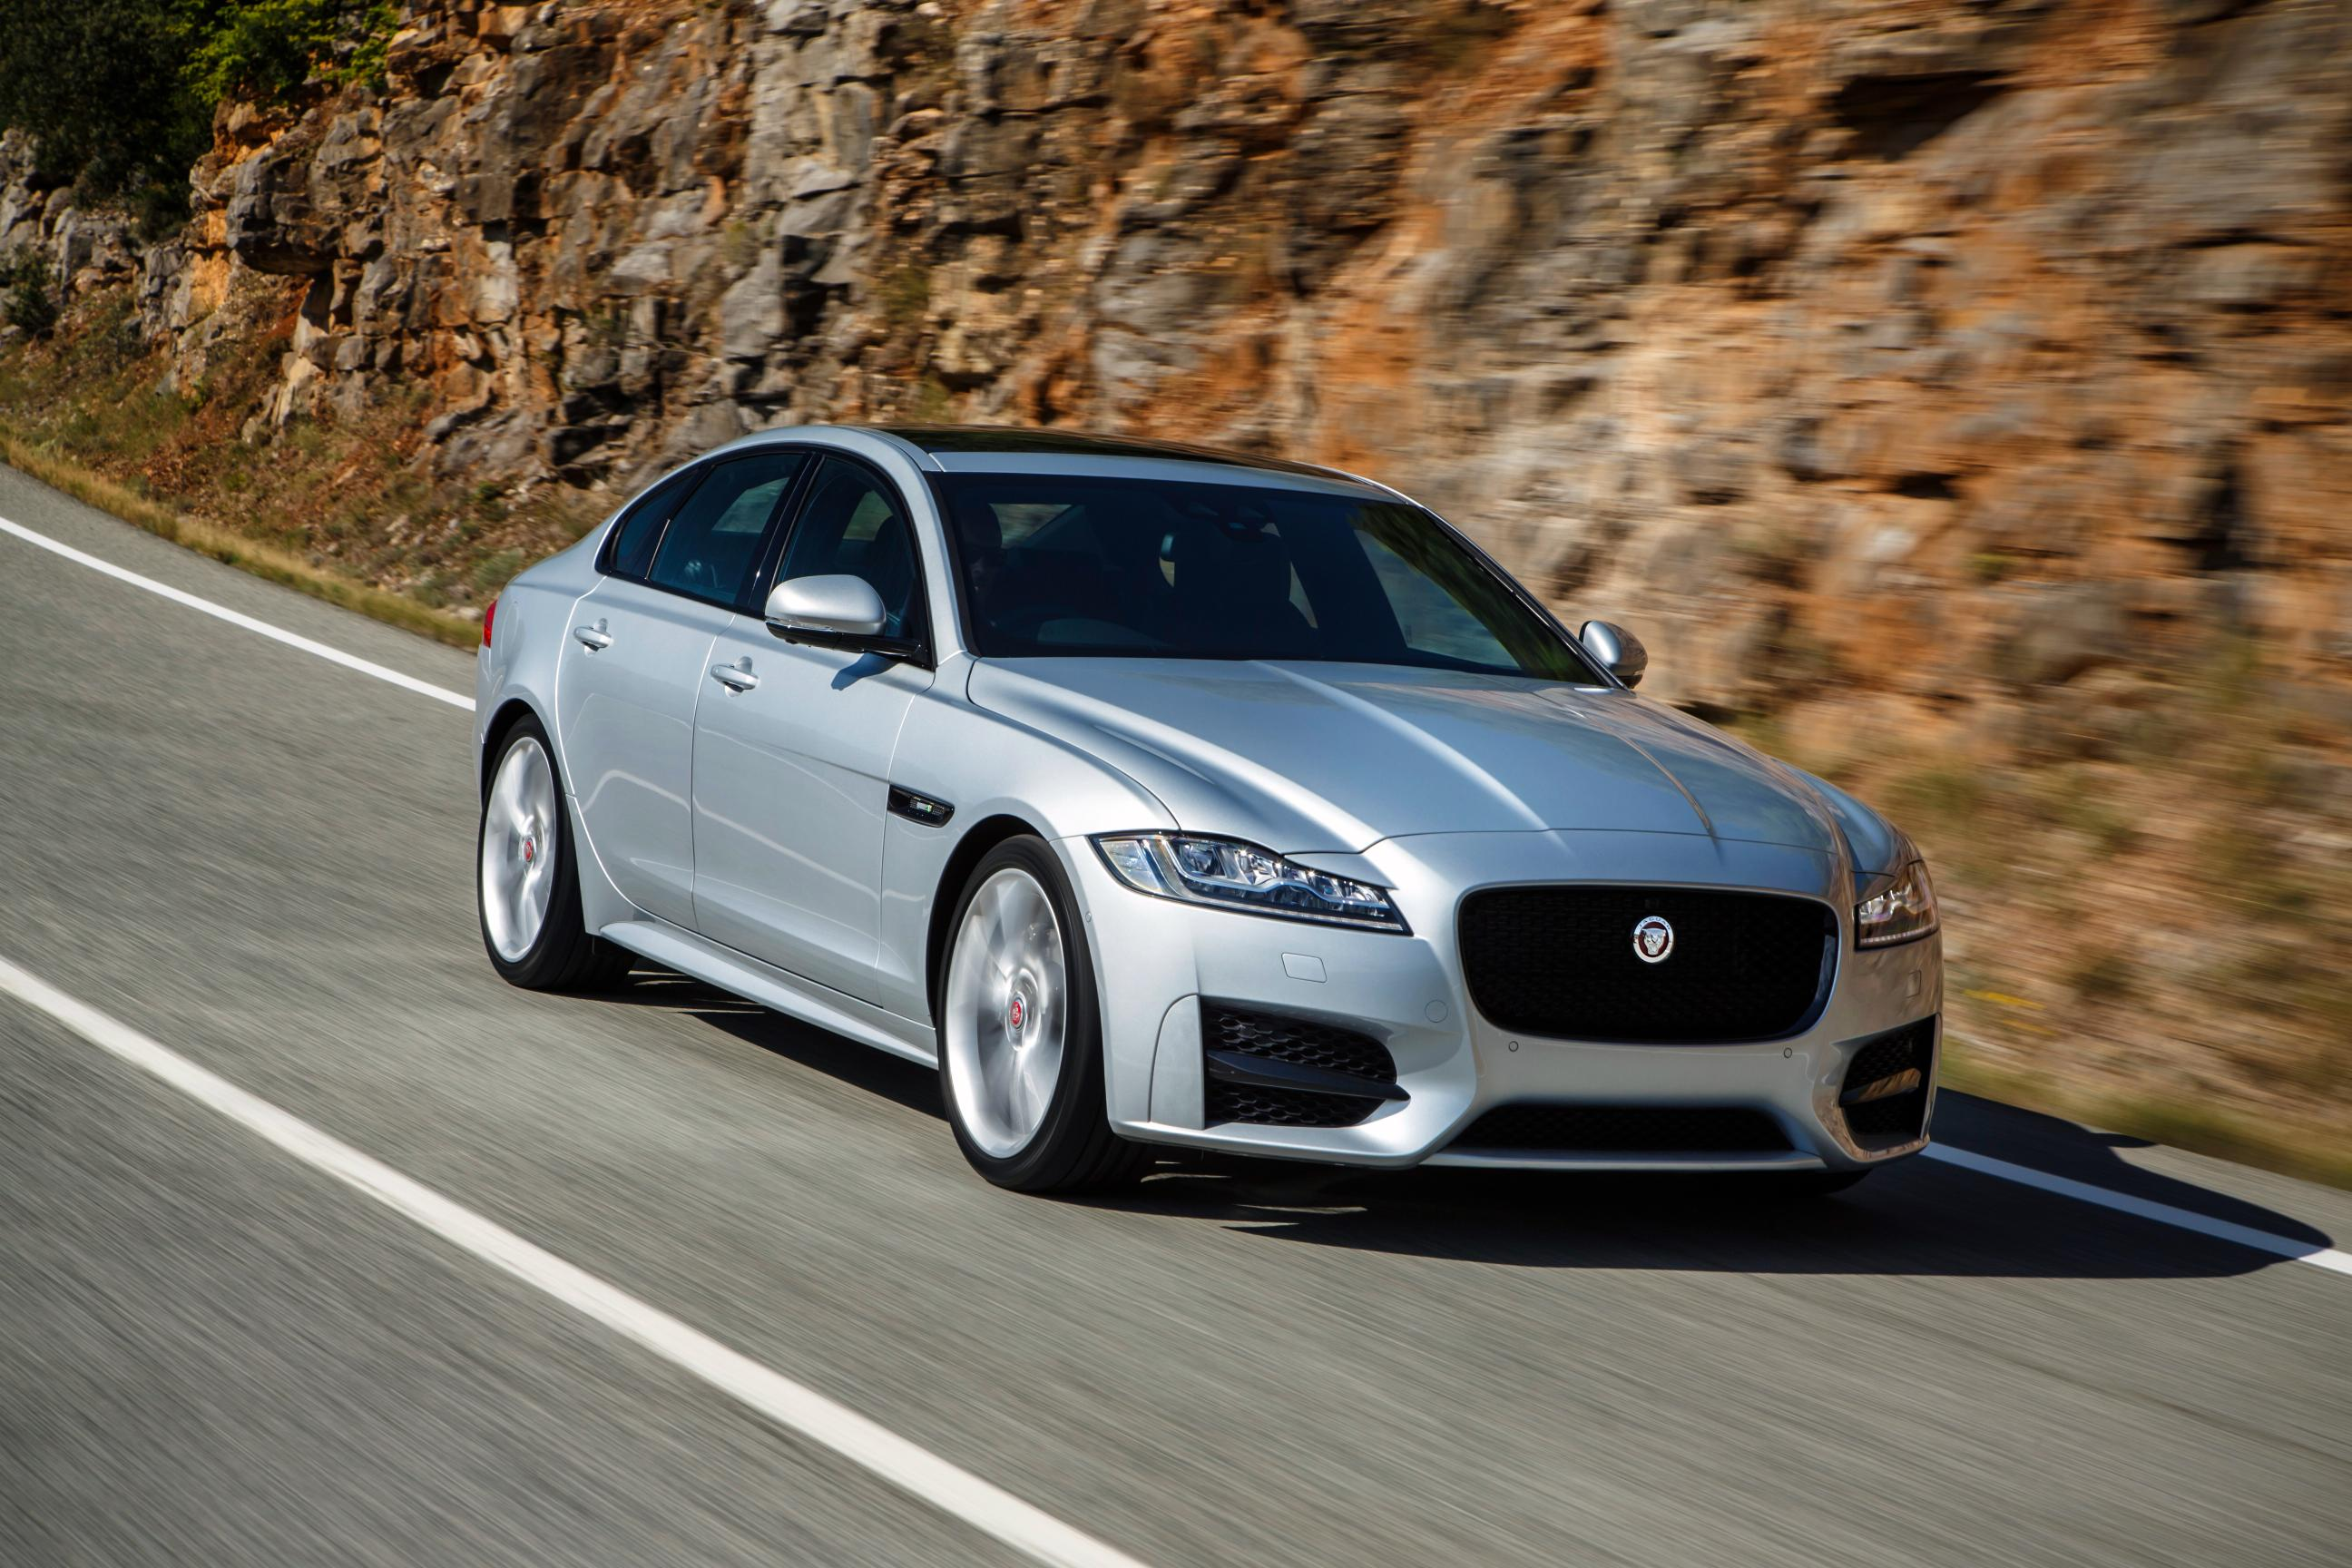 jaguar xf to star at wired2015 just british. Black Bedroom Furniture Sets. Home Design Ideas